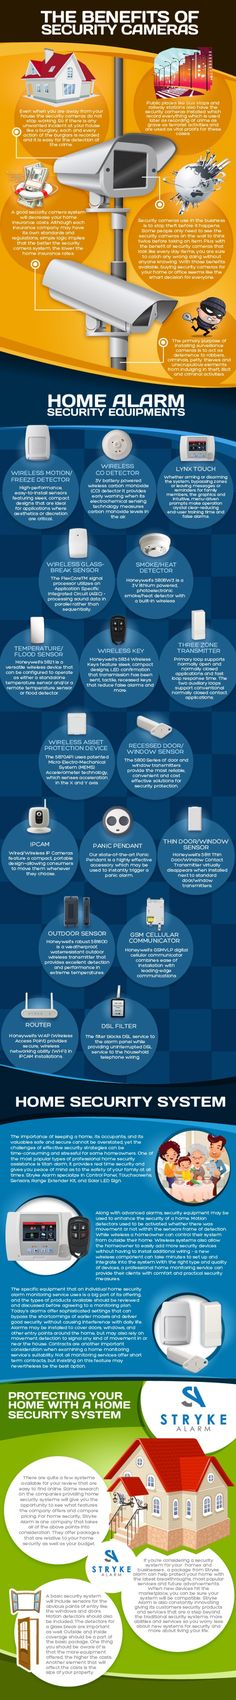 The Benefits of Security Cameras Infographic #homesecuritytips #homesecuritydiytips #homeschoolinginfographic